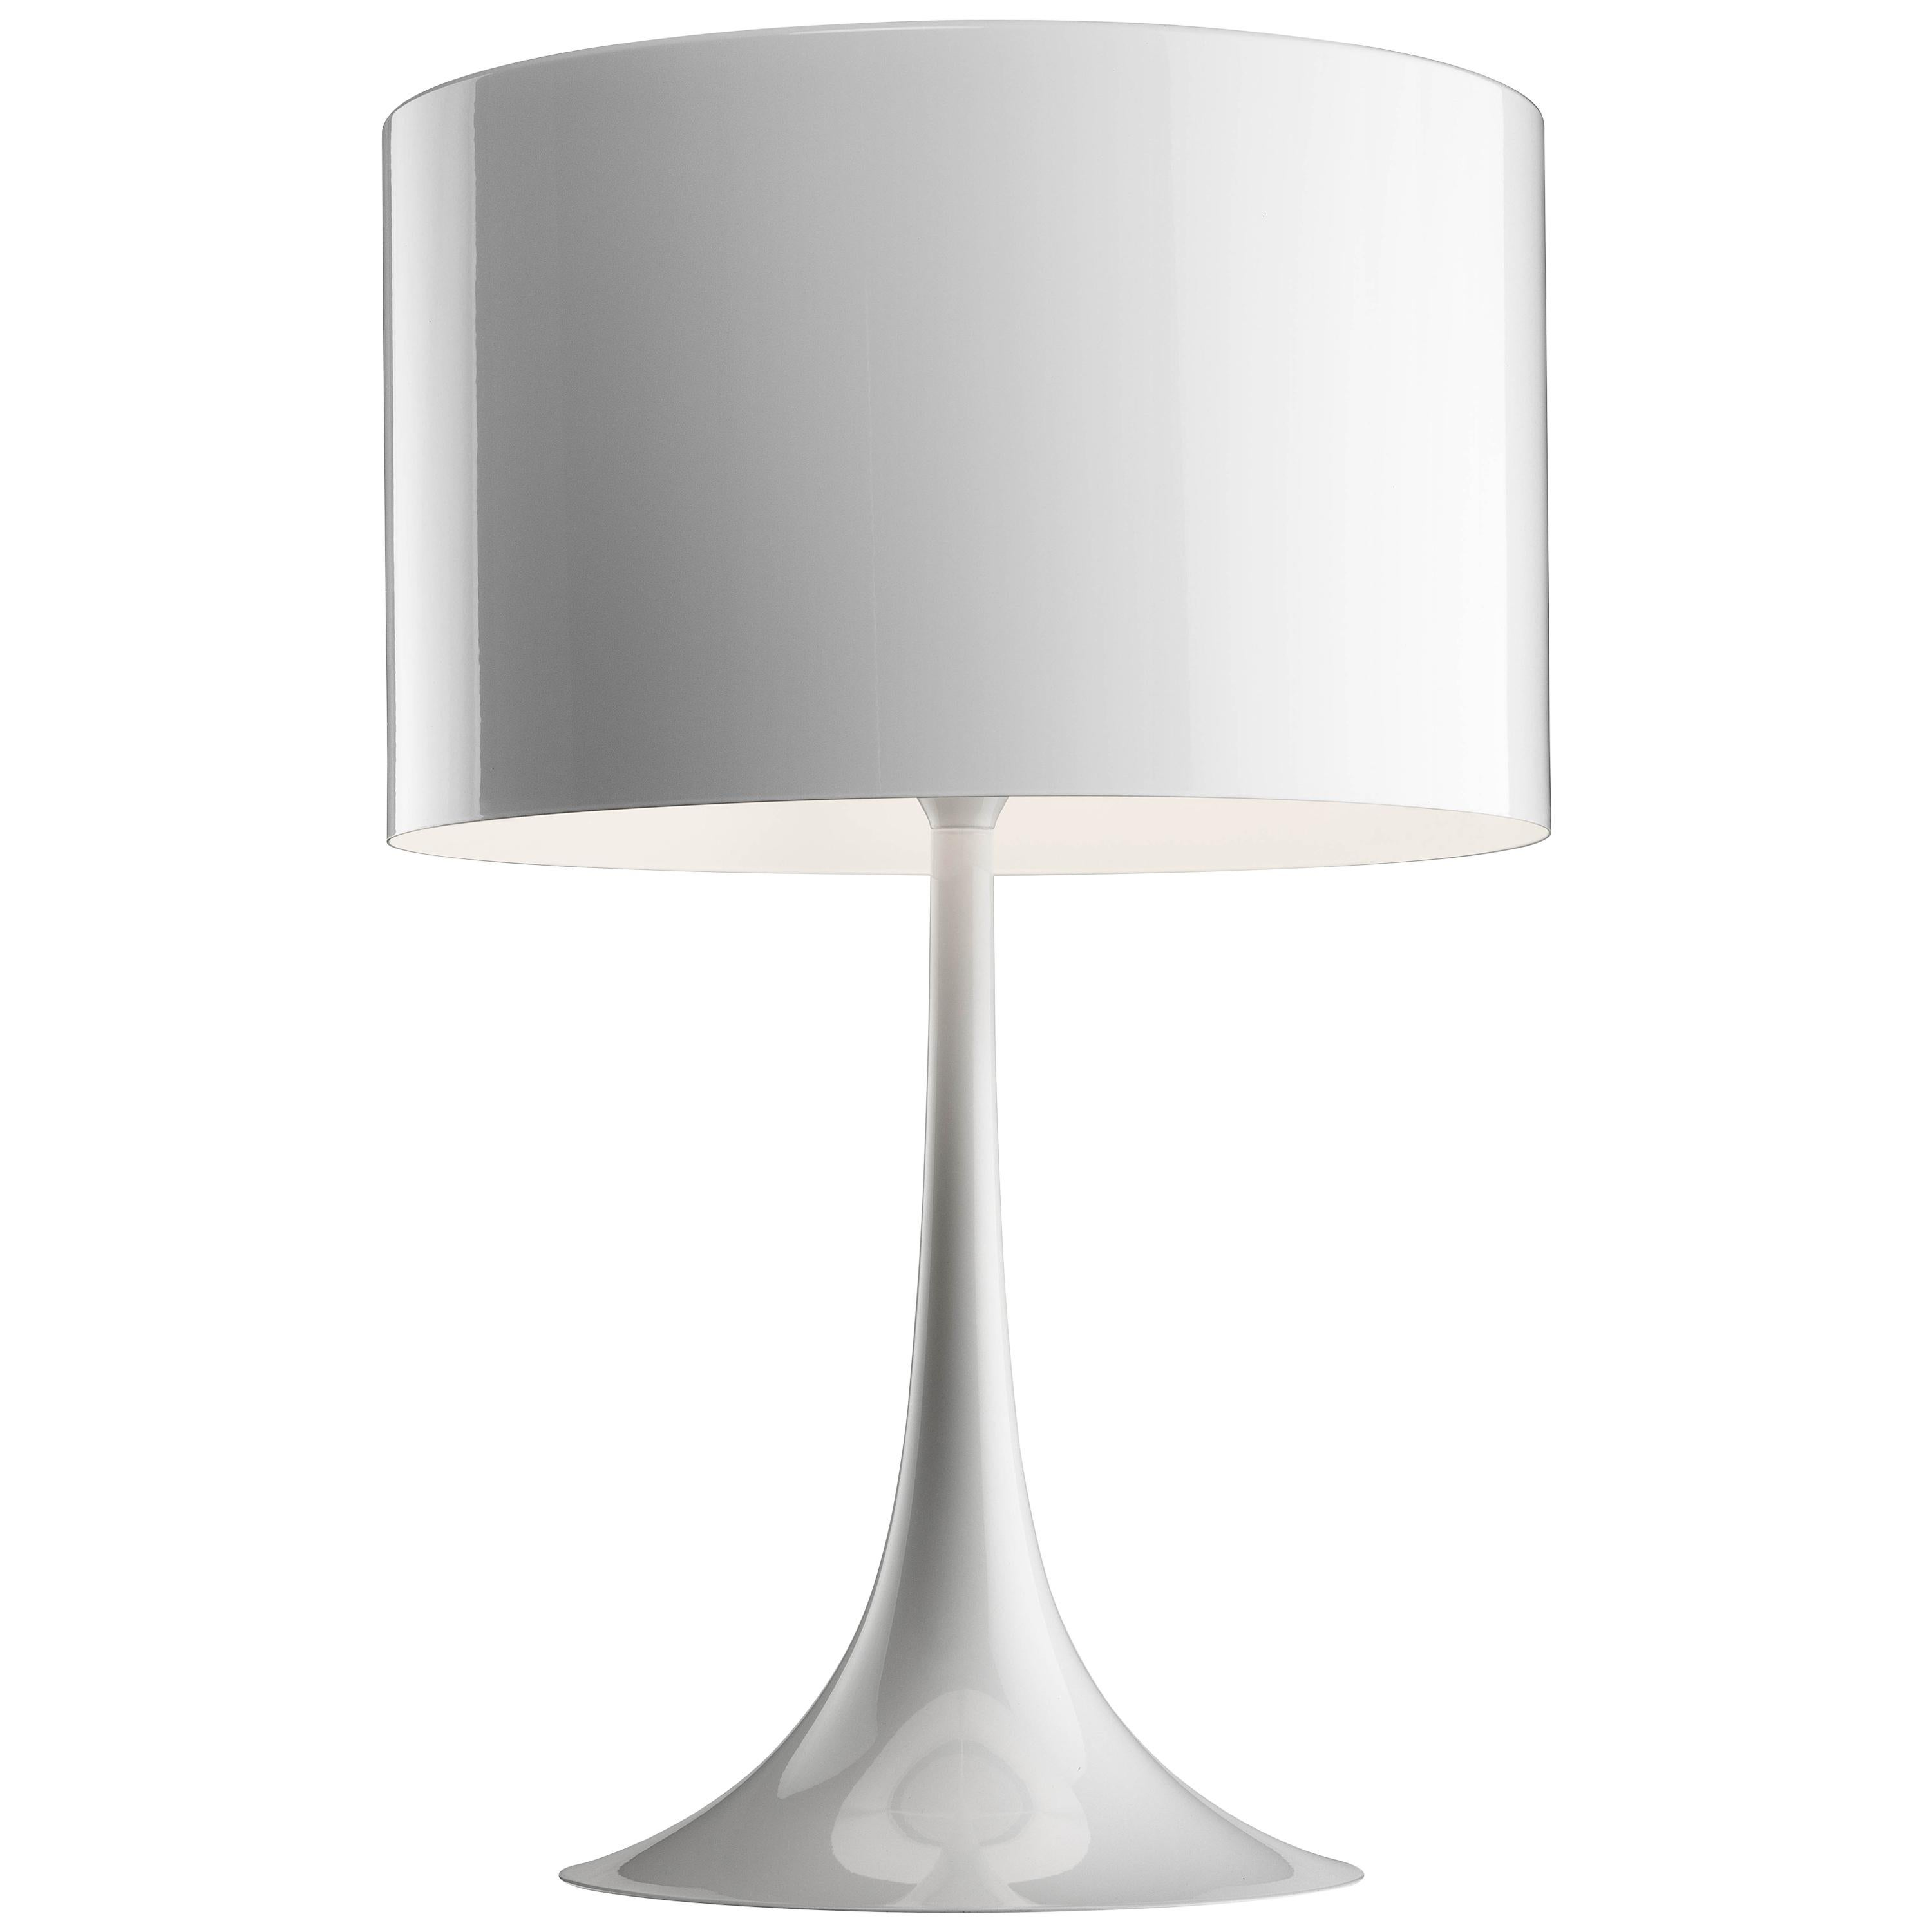 FLOS Spun T2 Halogen Table Lamp In Glossy White By Sebastian Wrong For Sale